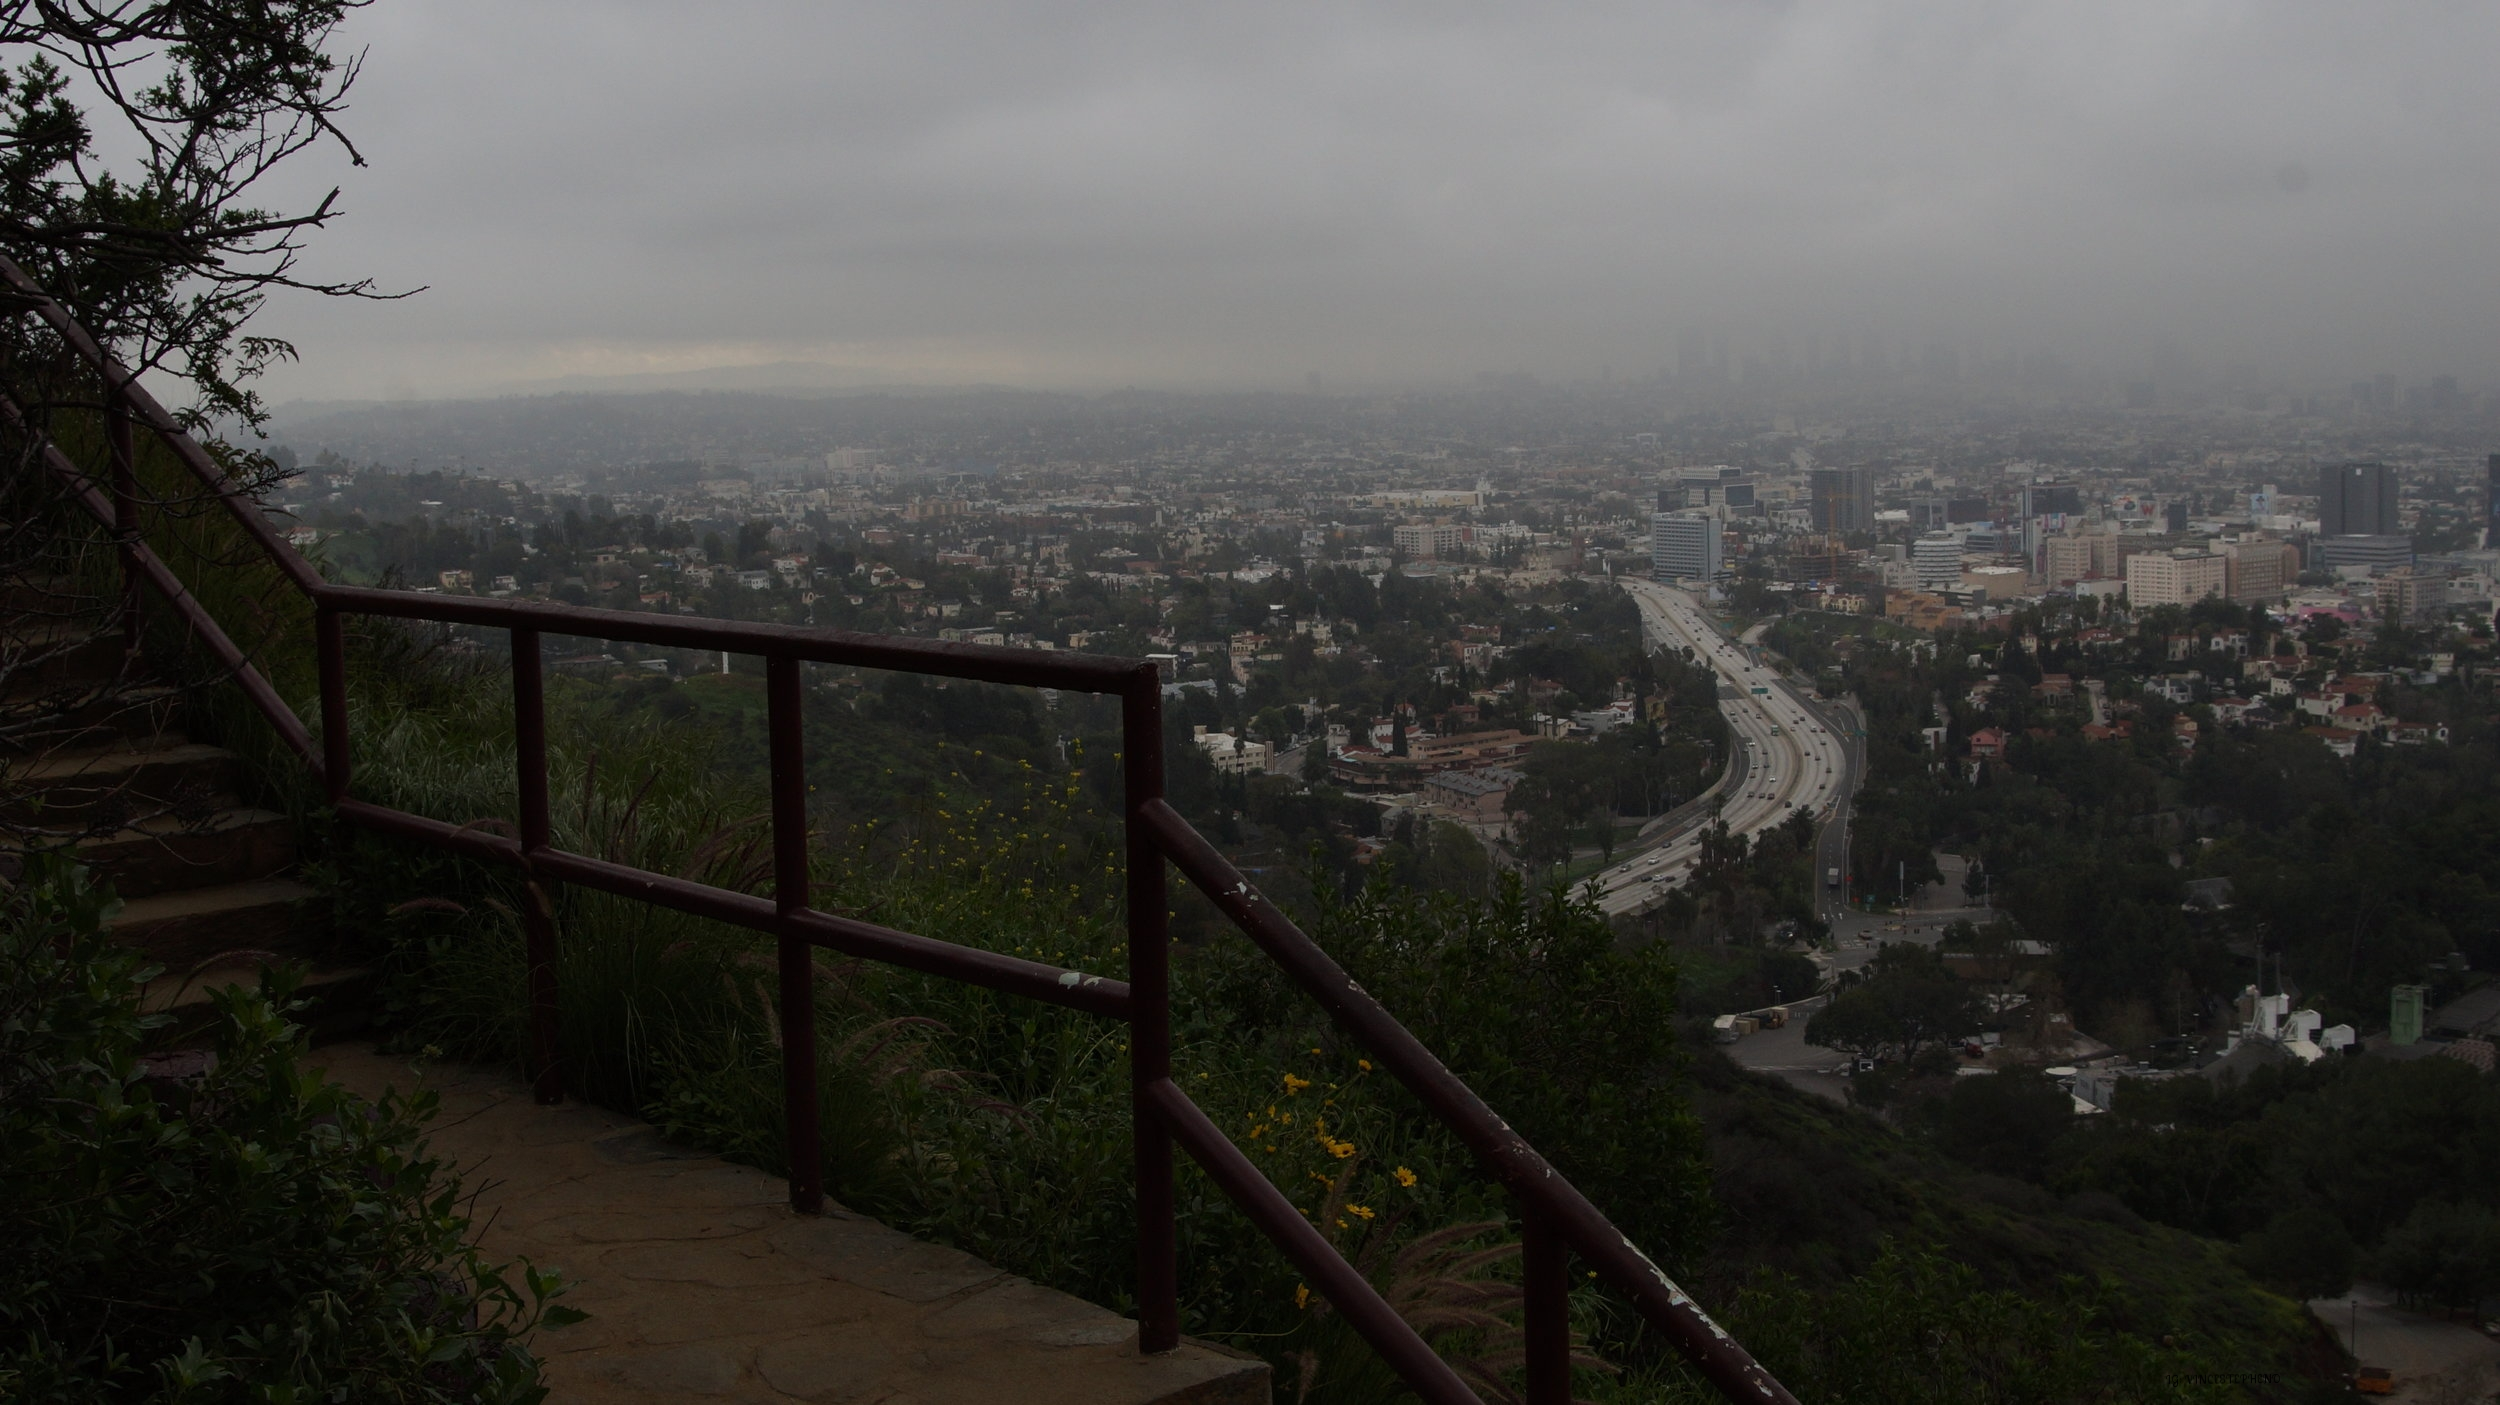 Los Angeles, Ca hollywood bowl overlook Feb. 2017 overcast/morning.